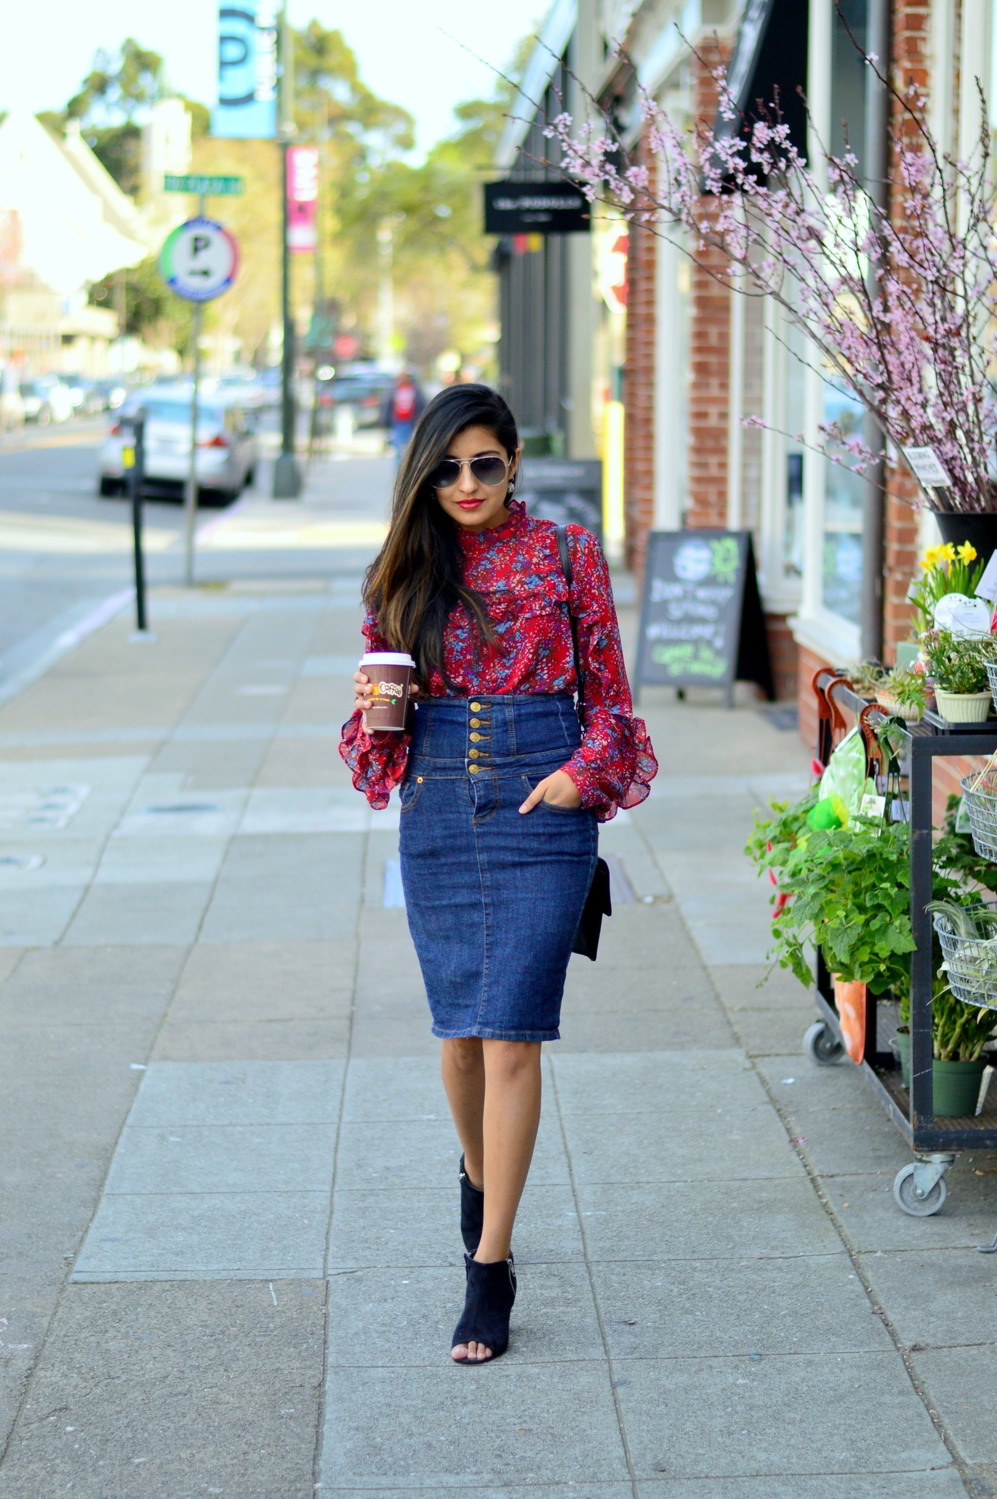 ruffles-floral-top-spring-style-high-waisted-denim-skirt-blogger-outfit 1